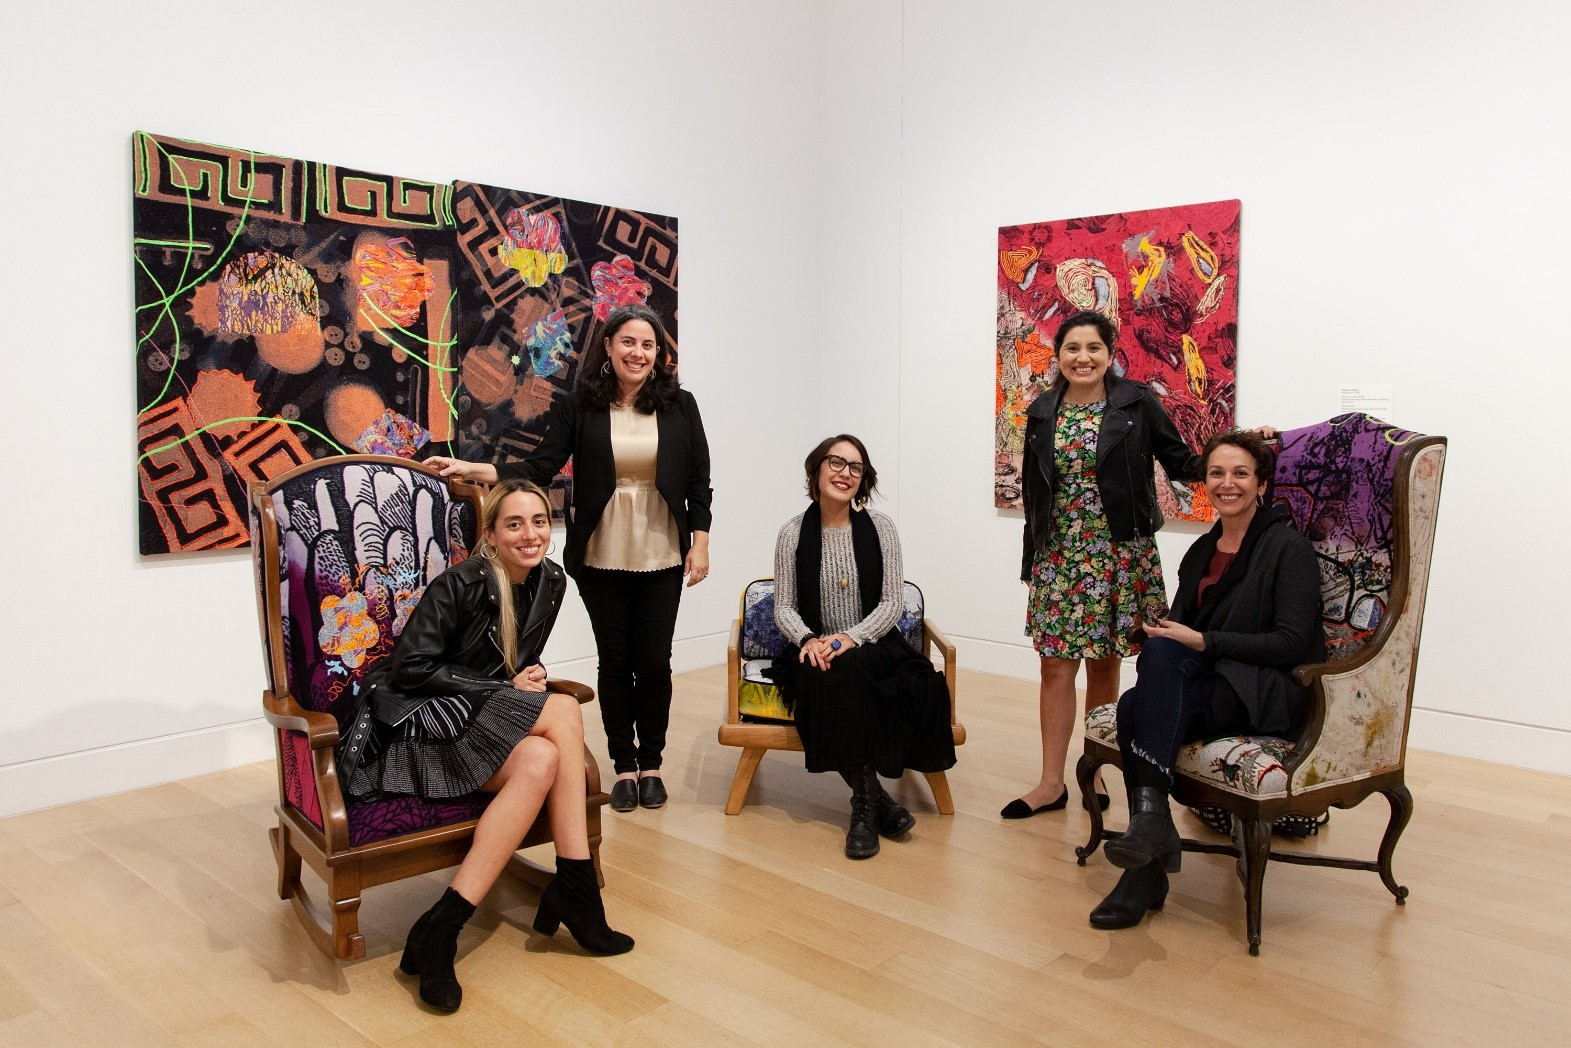 "Artist Melissa Leandro; DePaul Art Museum director and chief curator Julie Rodrigues Widholm; artist Jenelle Esparza; assistant curator Mia Lopez; and artist Dianna Frid gathered at the ""Remember Where You Are"" exhibition at DePaul Art Museum, 2019 (DePaul Art Museum/Madeline Rosemurgy)"